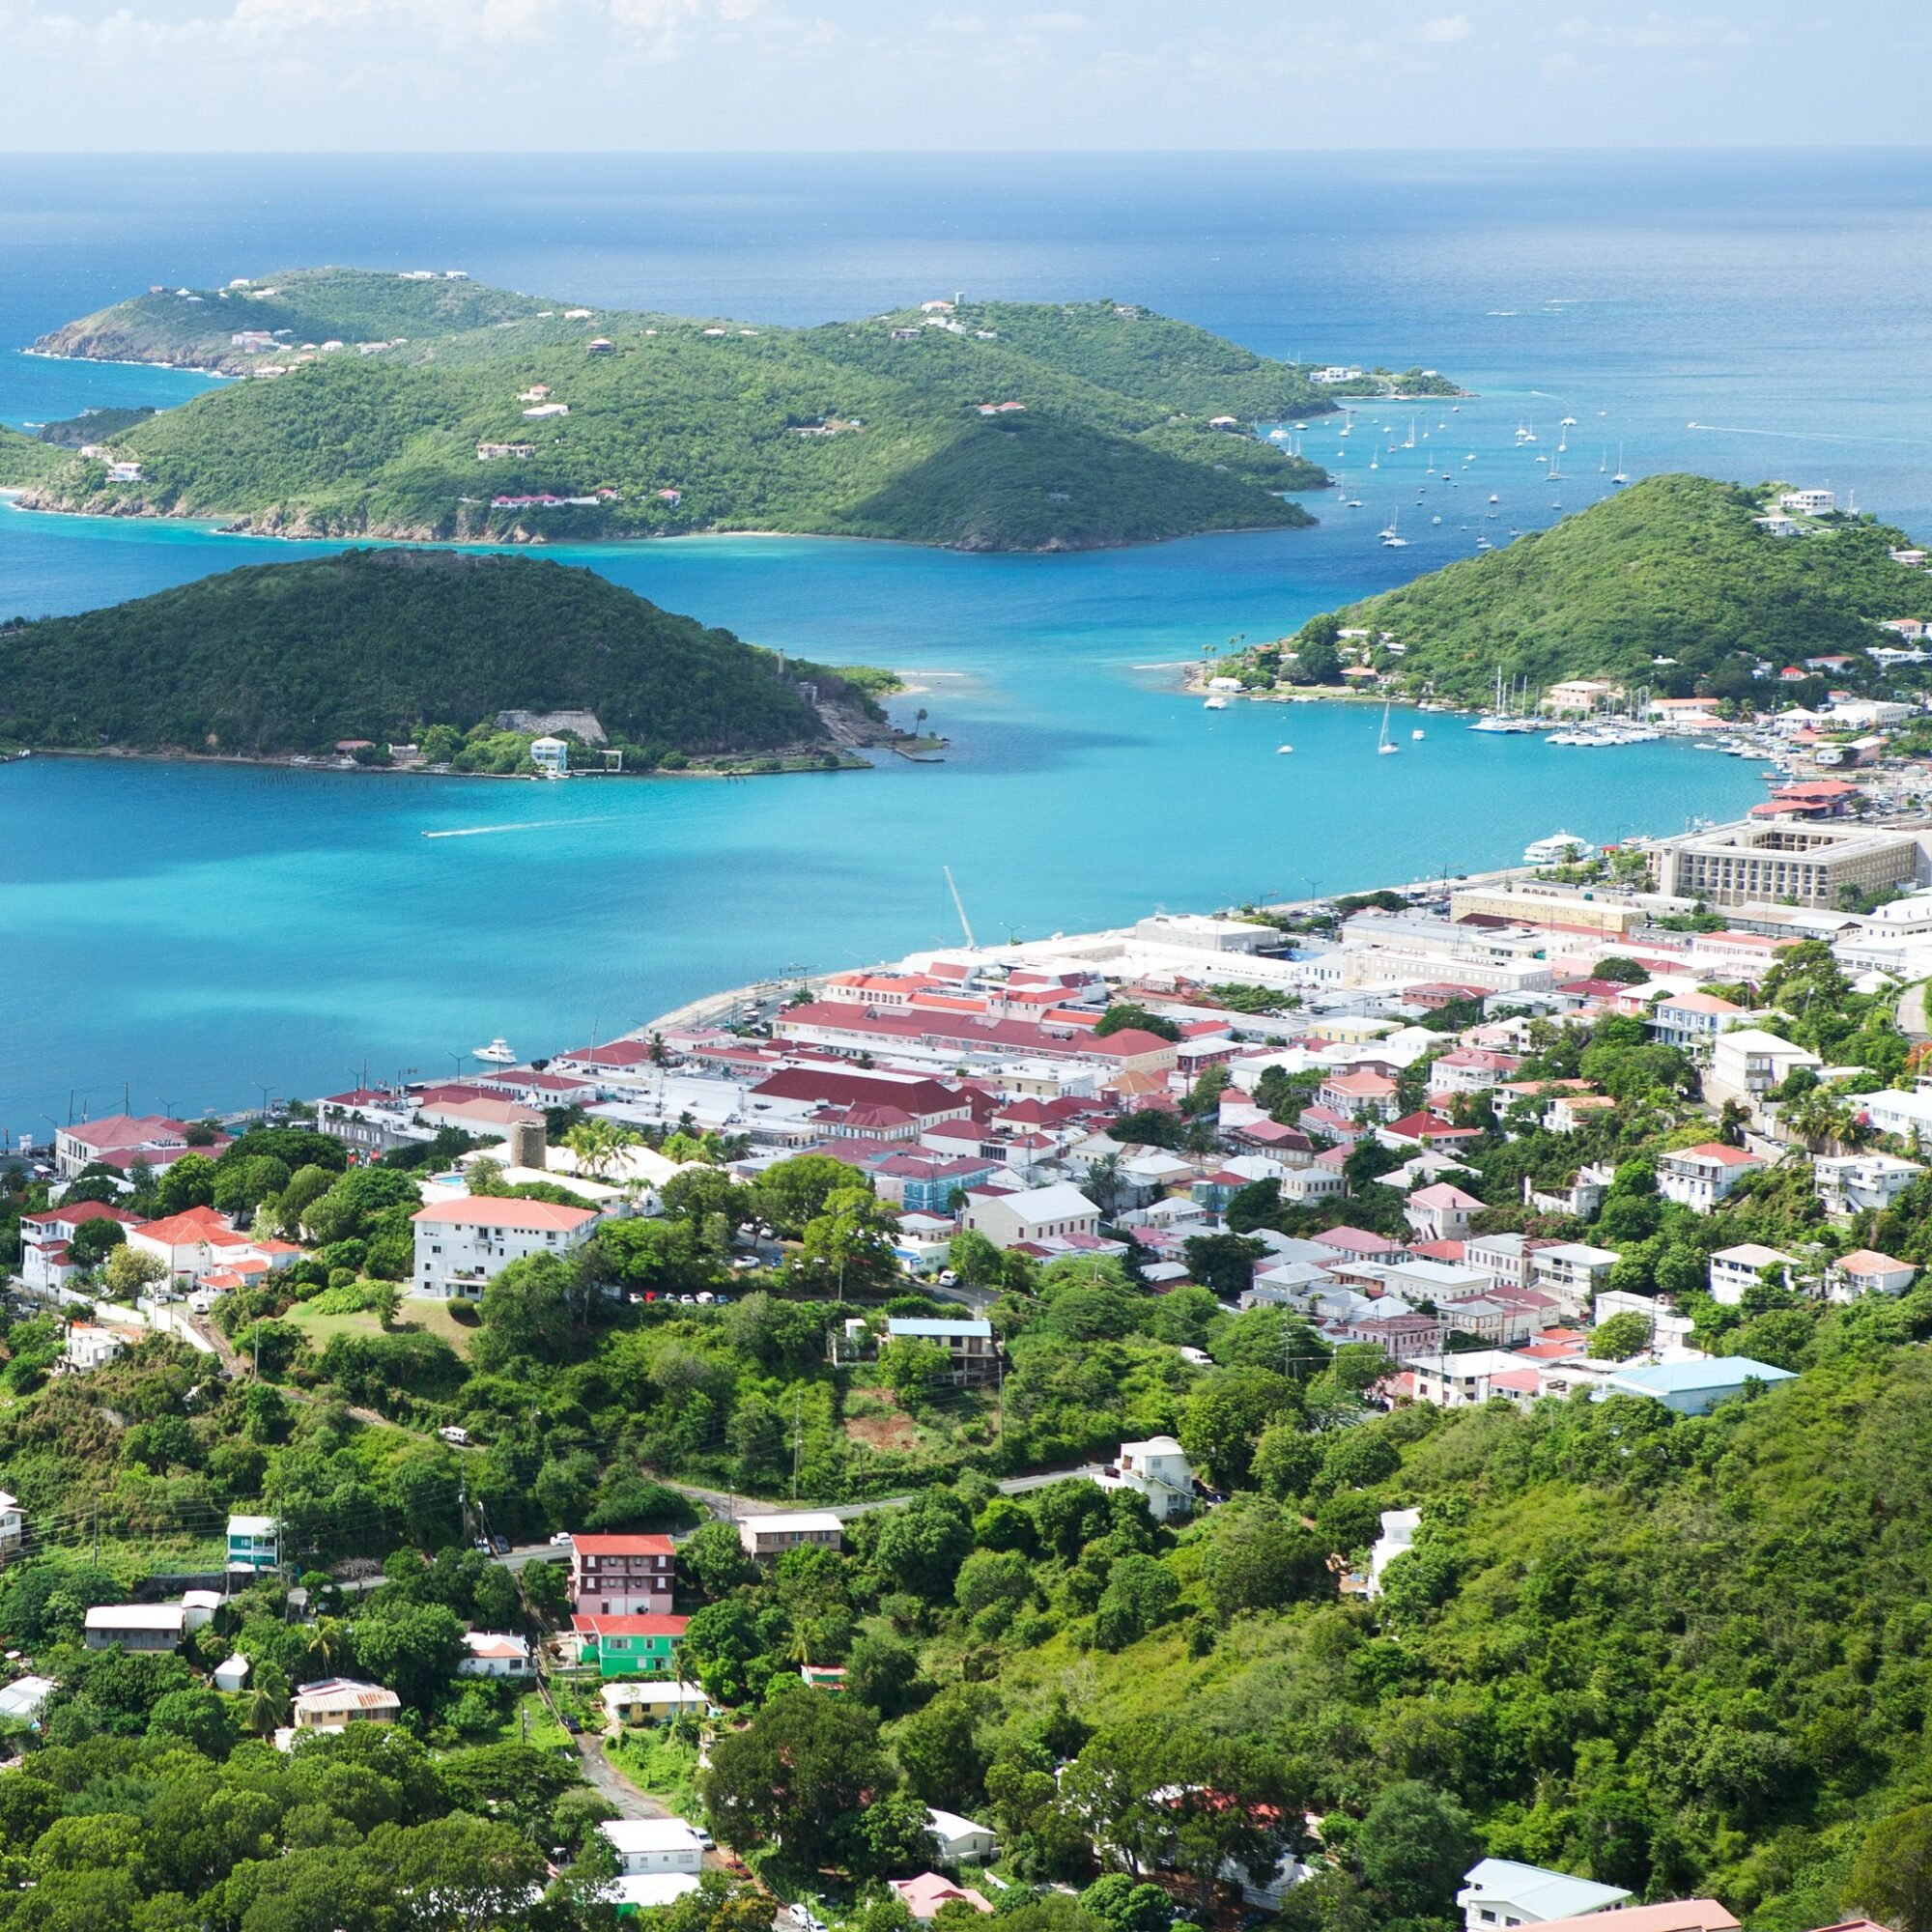 Aerial view of Charlotte Amalie on St. Thomas island.